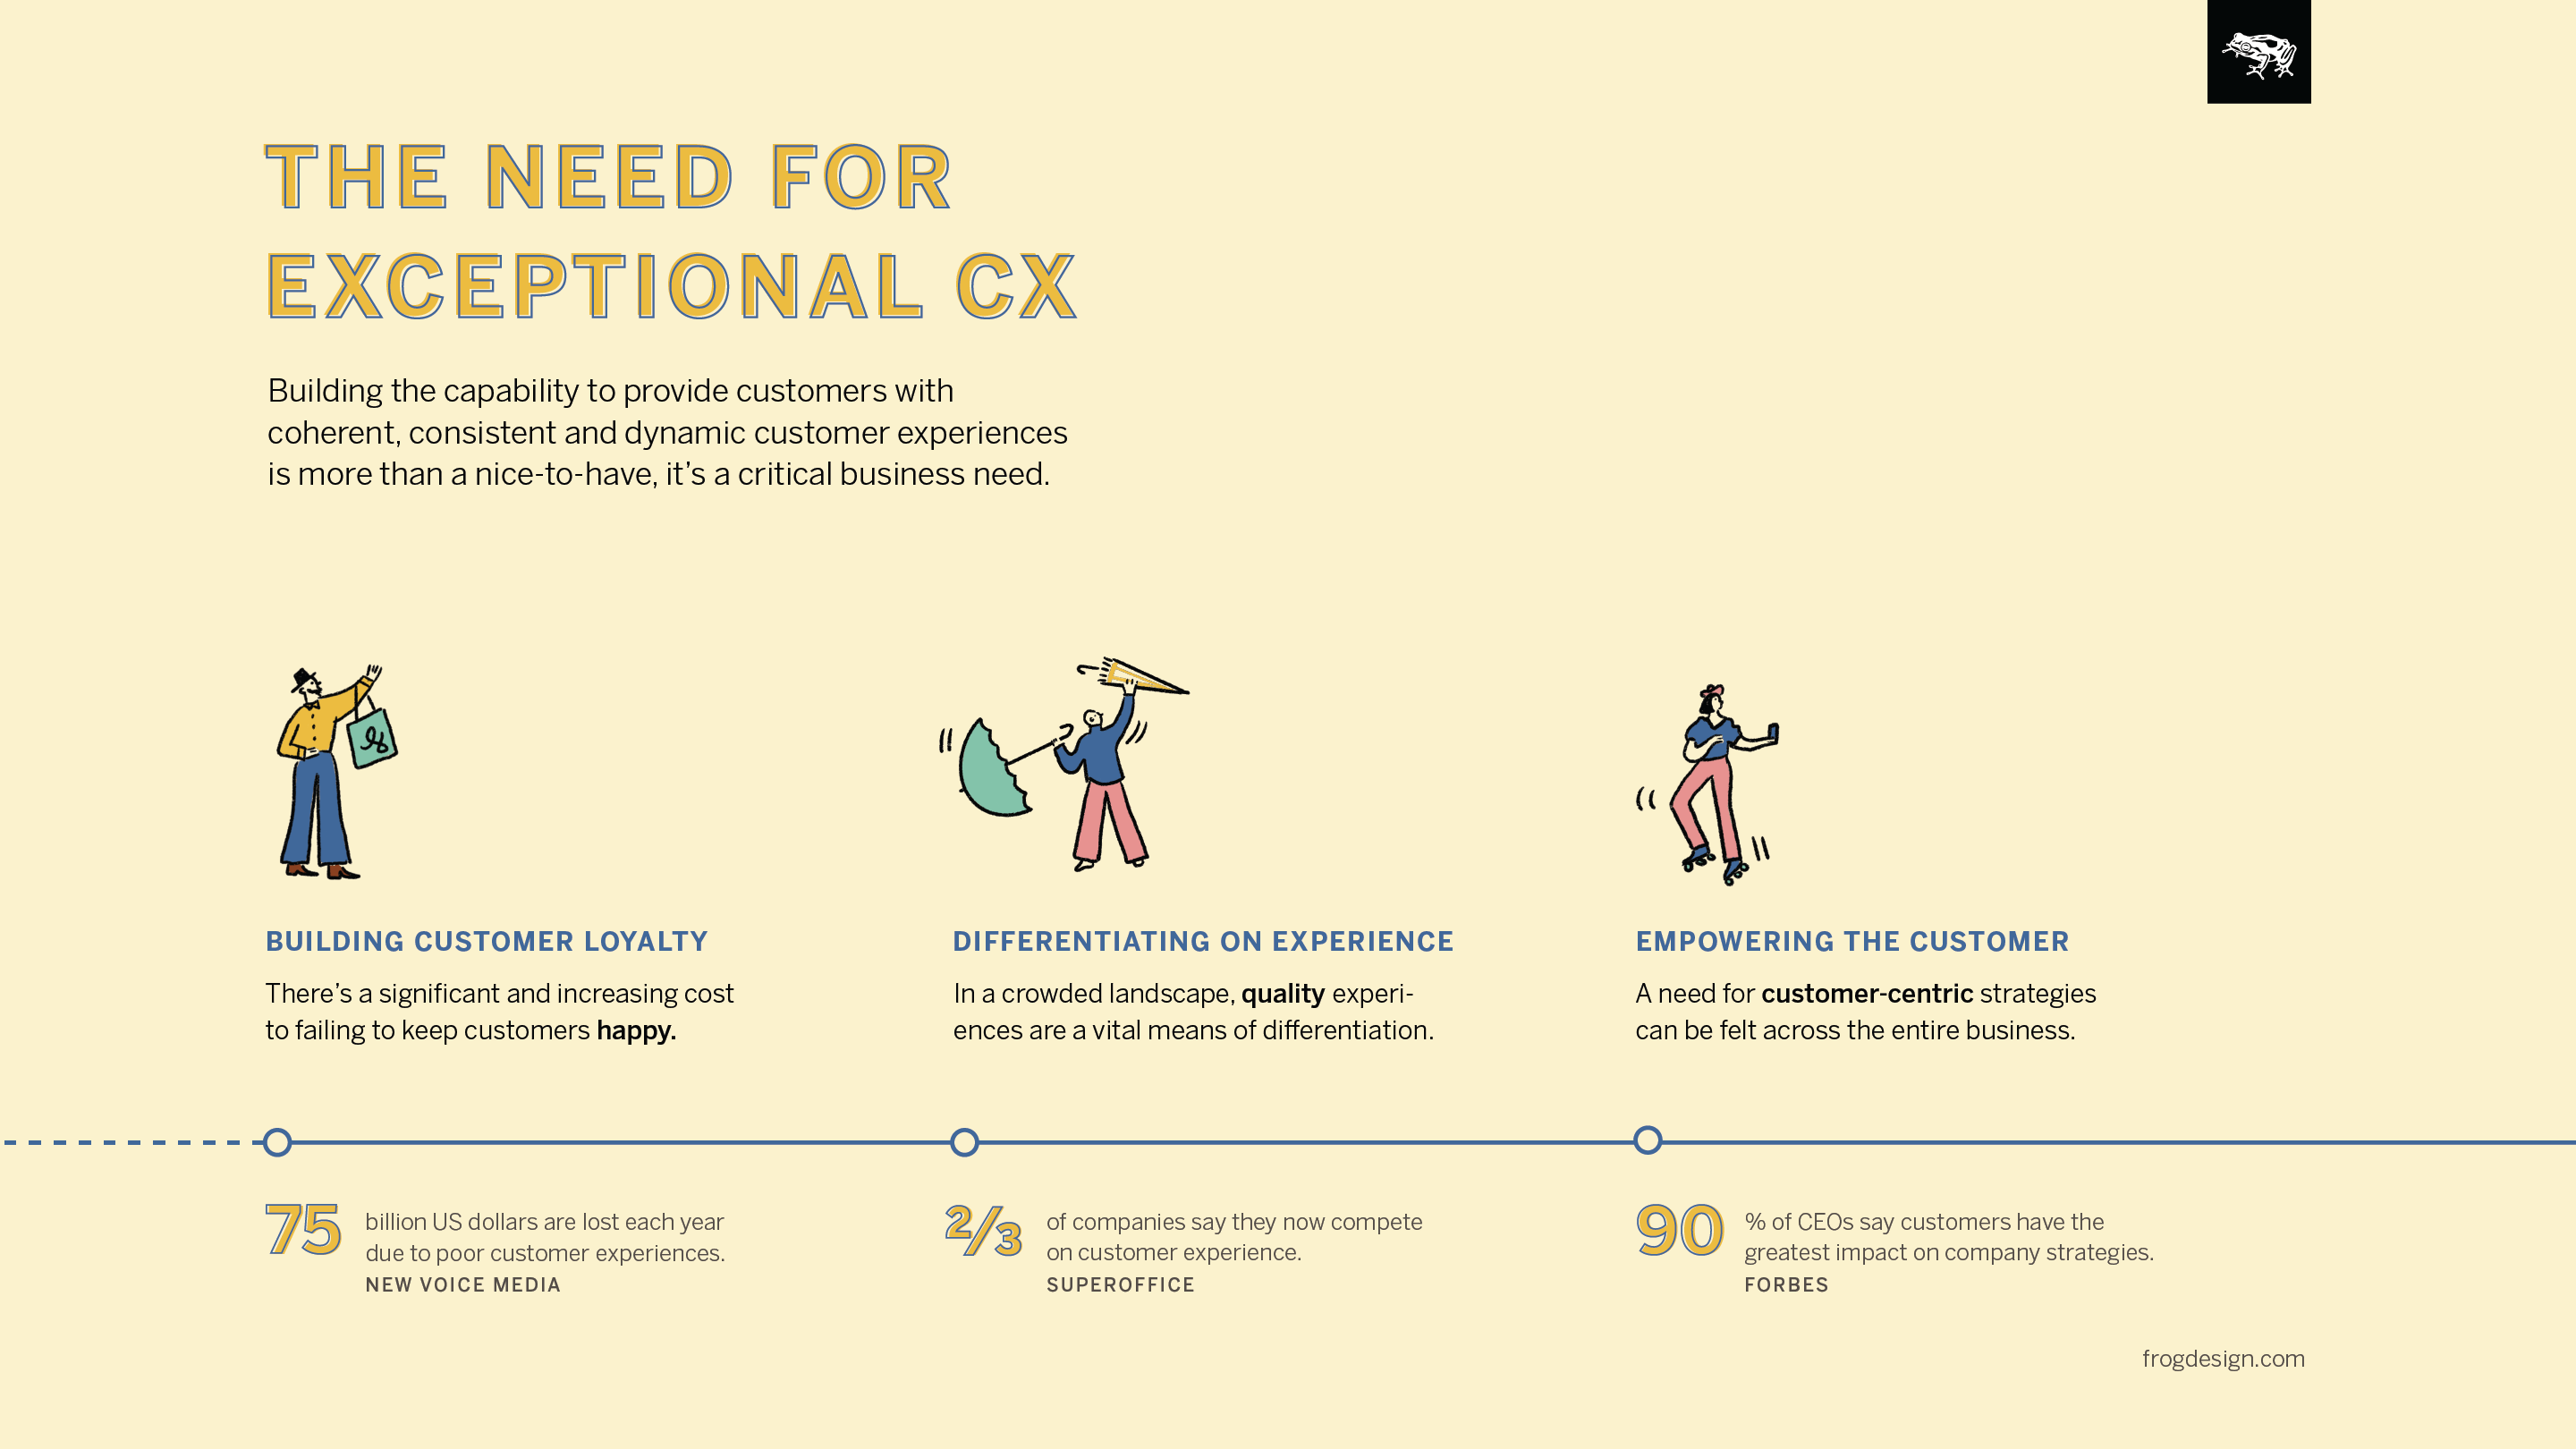 The Need for Exceptional CX infographic